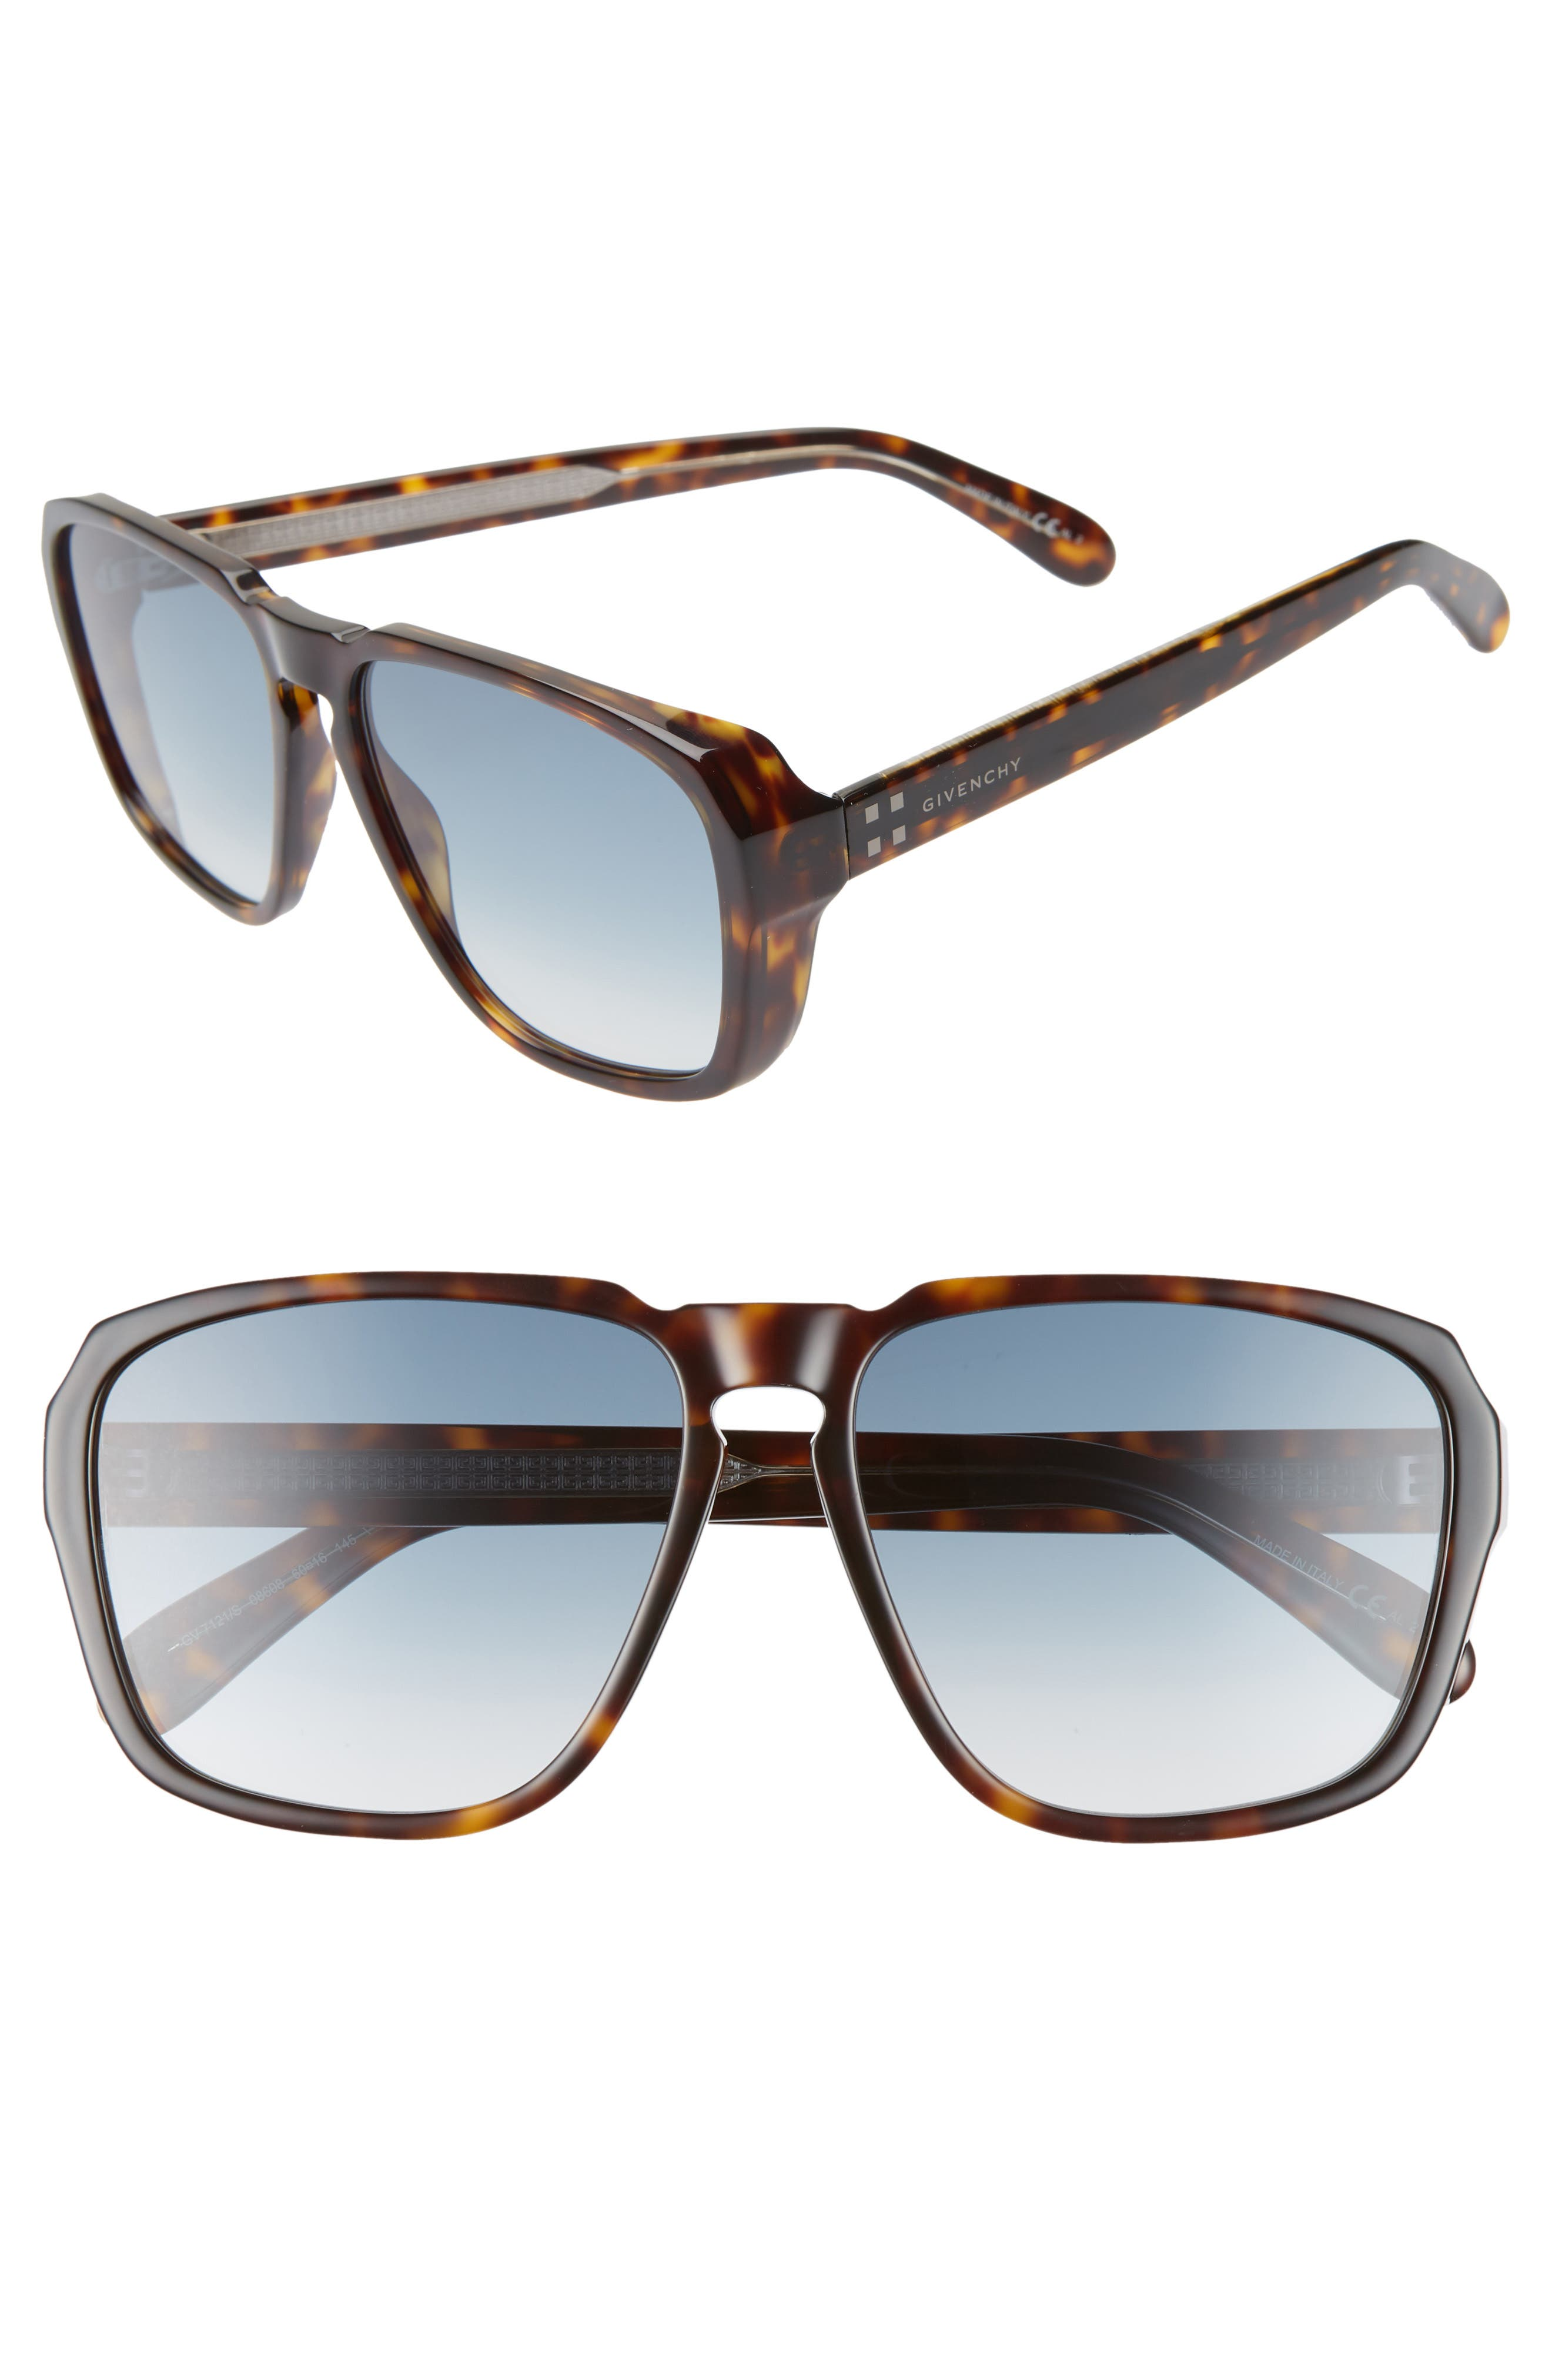 60mm Flat Top Sunglasses,                             Main thumbnail 1, color,                             DARK HAVANA